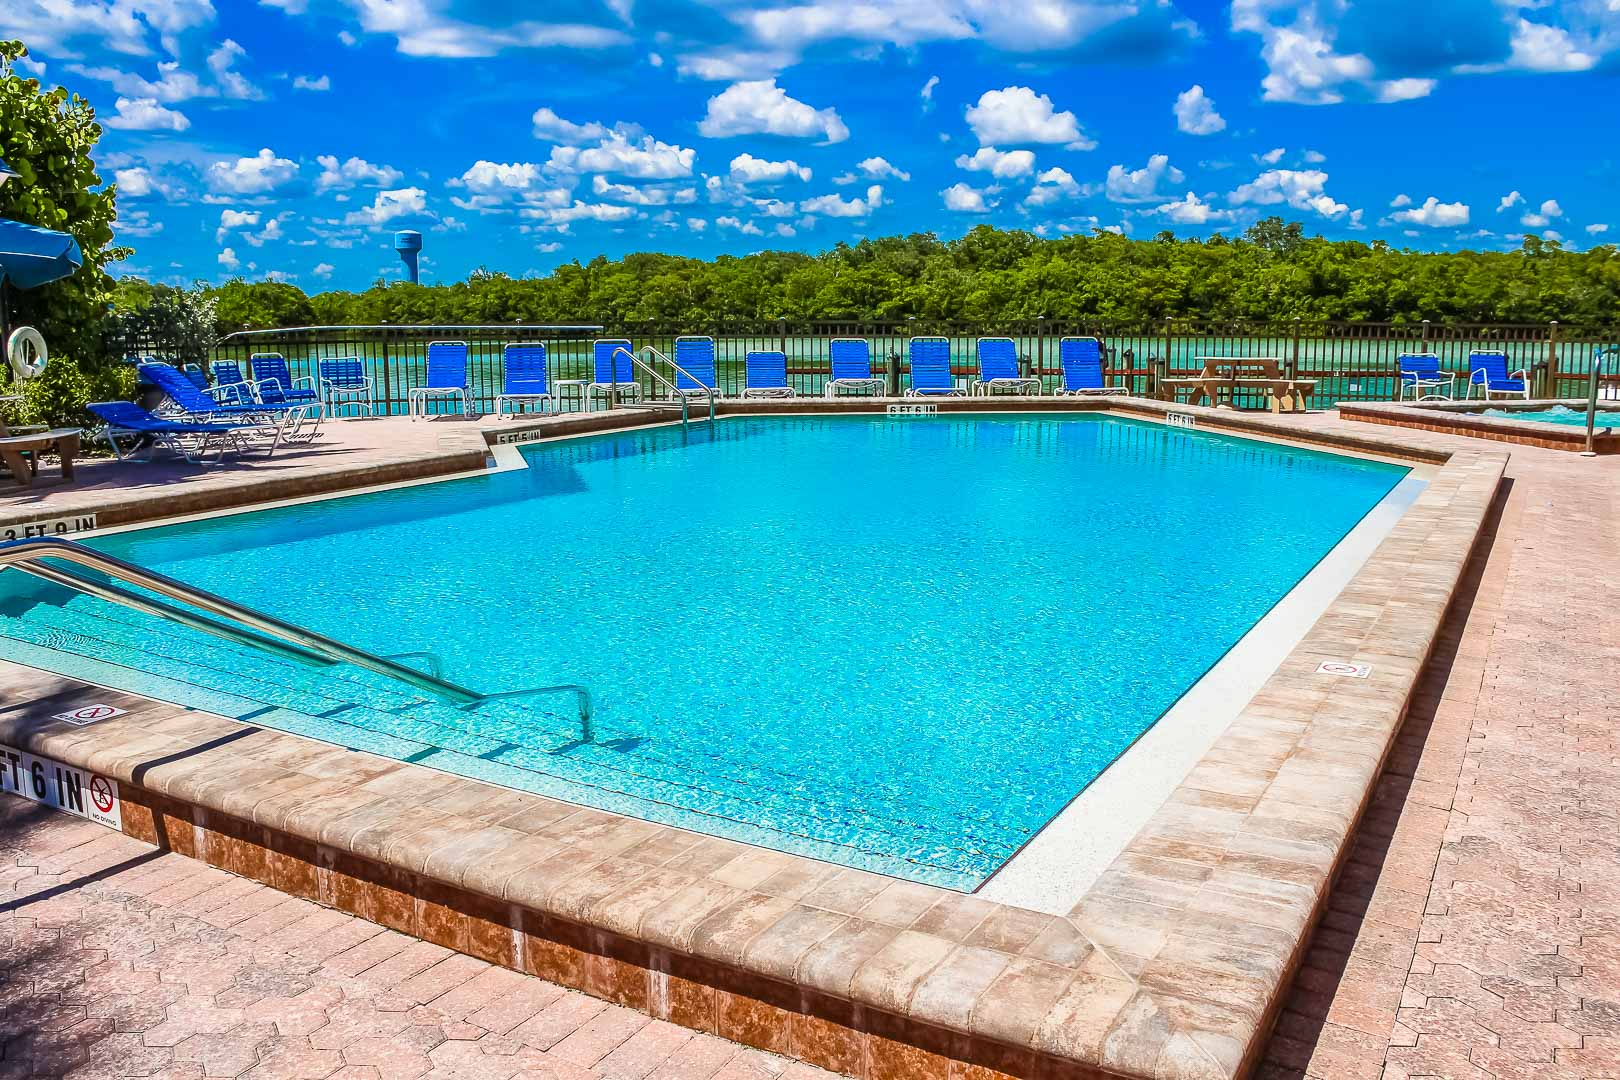 A crisp outdoor swimming pool at VRI's Bonita Resort and Club in Florida.